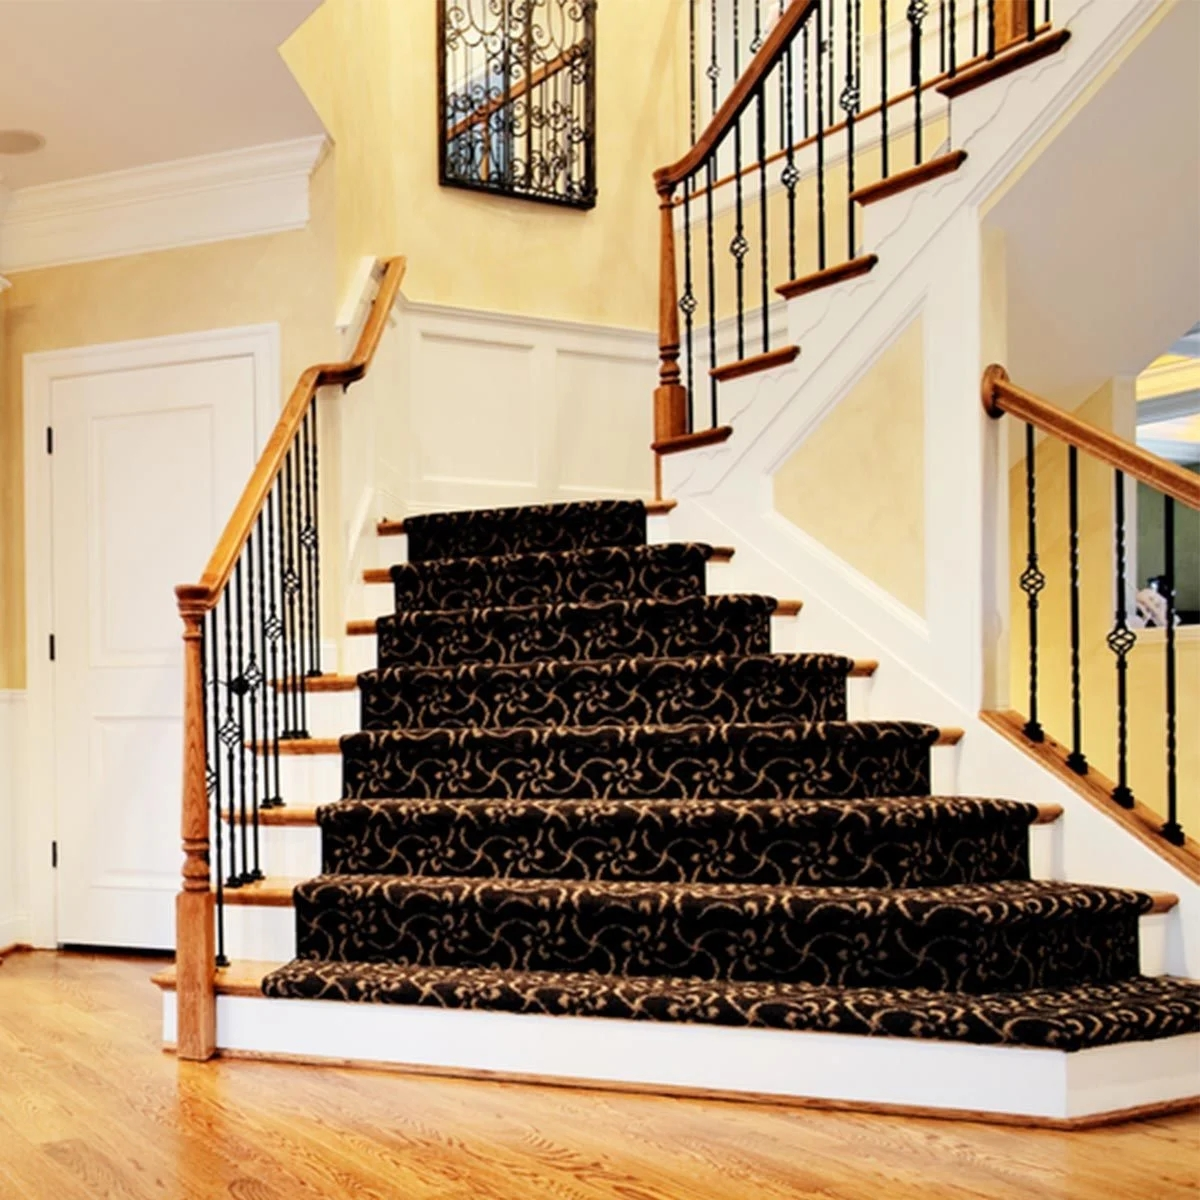 Make A Home Safe For Older Folks | Handrail For Stairs Indoor | Short Staircase | Victorian | Width Hand | Wall | Glass Panel Stainless Steel Handrail